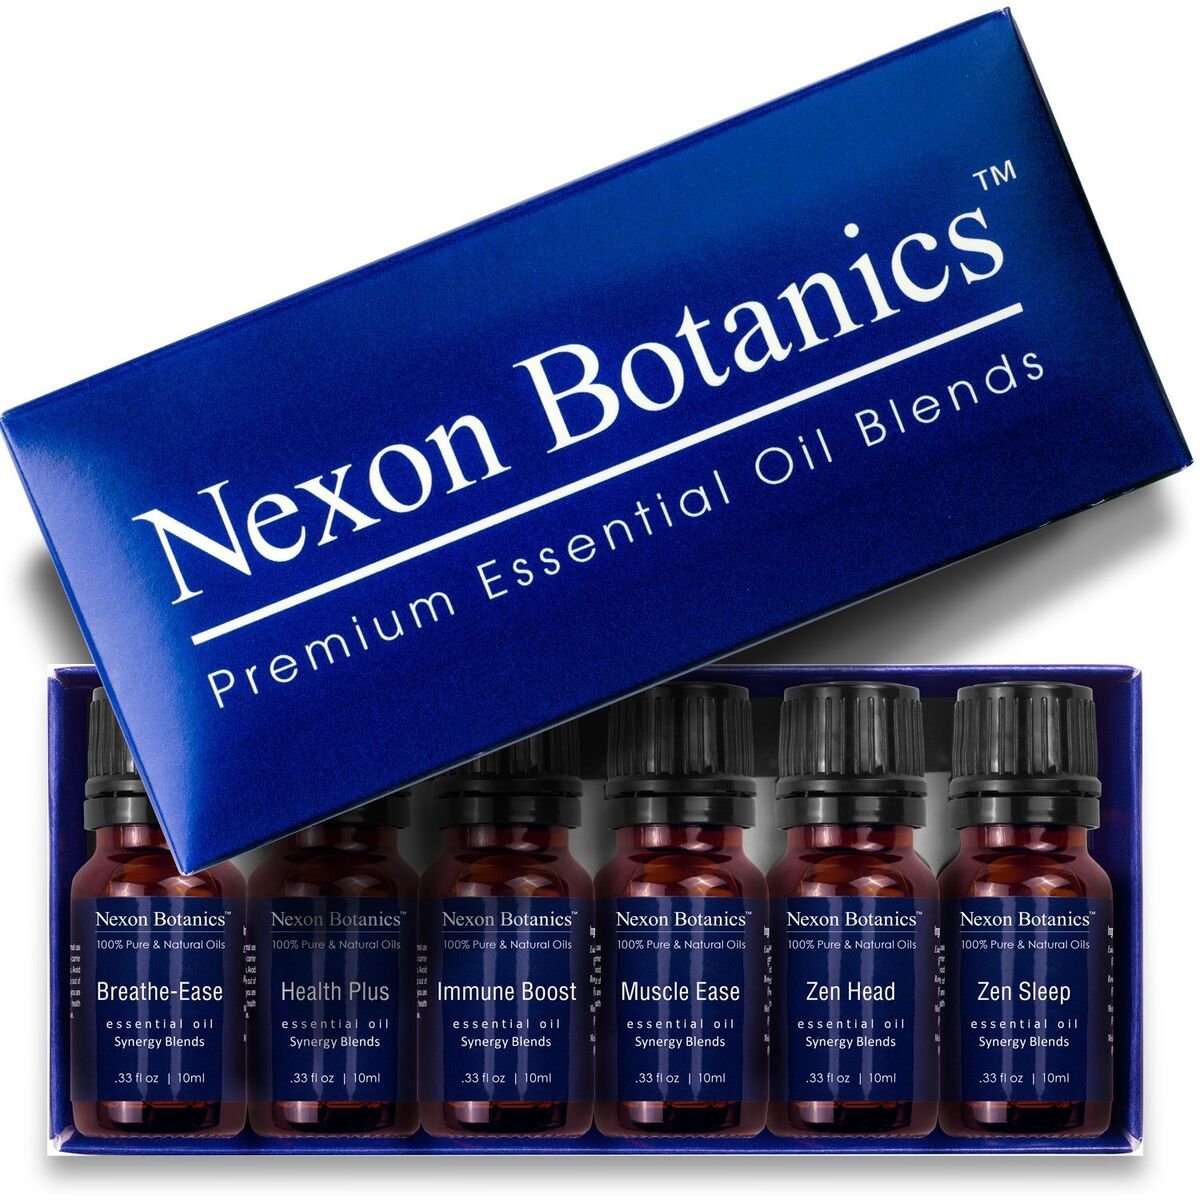 Aromatherapy Essential Oil Synergy Blend Set - 100% Pure & Natural Undiluted Therapeutic Grade Blends Include Breathe Ease, Health Plus, Zen Head, Muscle Ease, Zen Sleep, Immune Boost Oils 6 x 10 ml by Nexon Botanics (Image #8)